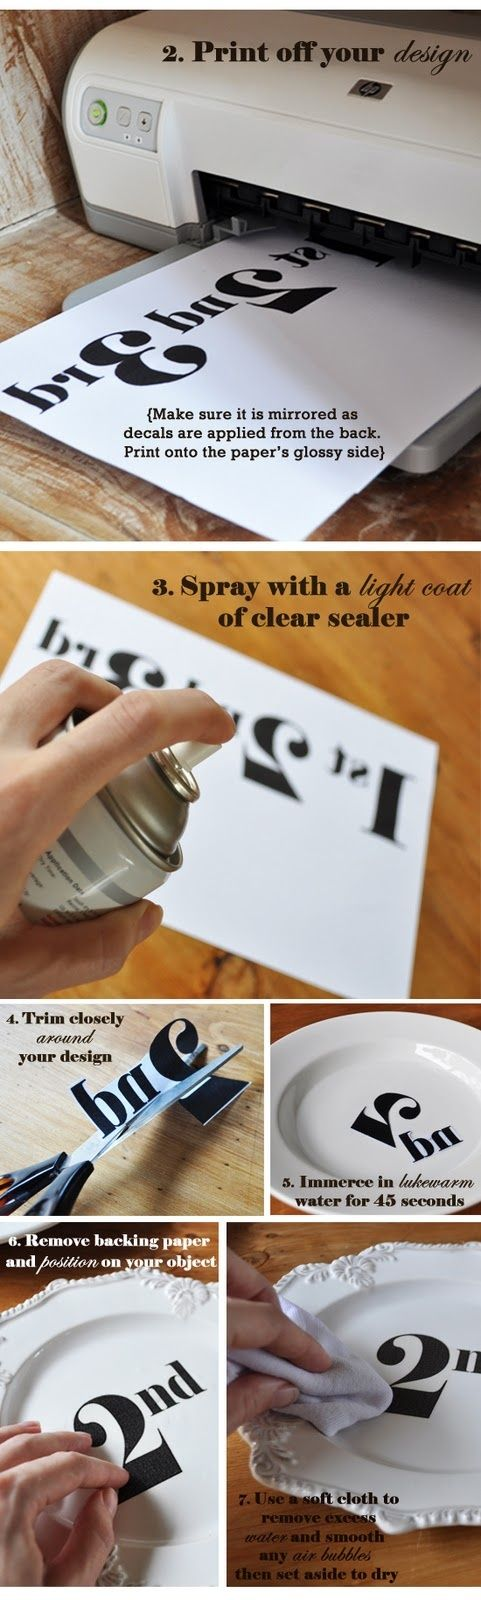 DIY Transfer Decal Tutorial:  This would be a great way to make a set of table numbers... if not plates, then some other ceramic surface.